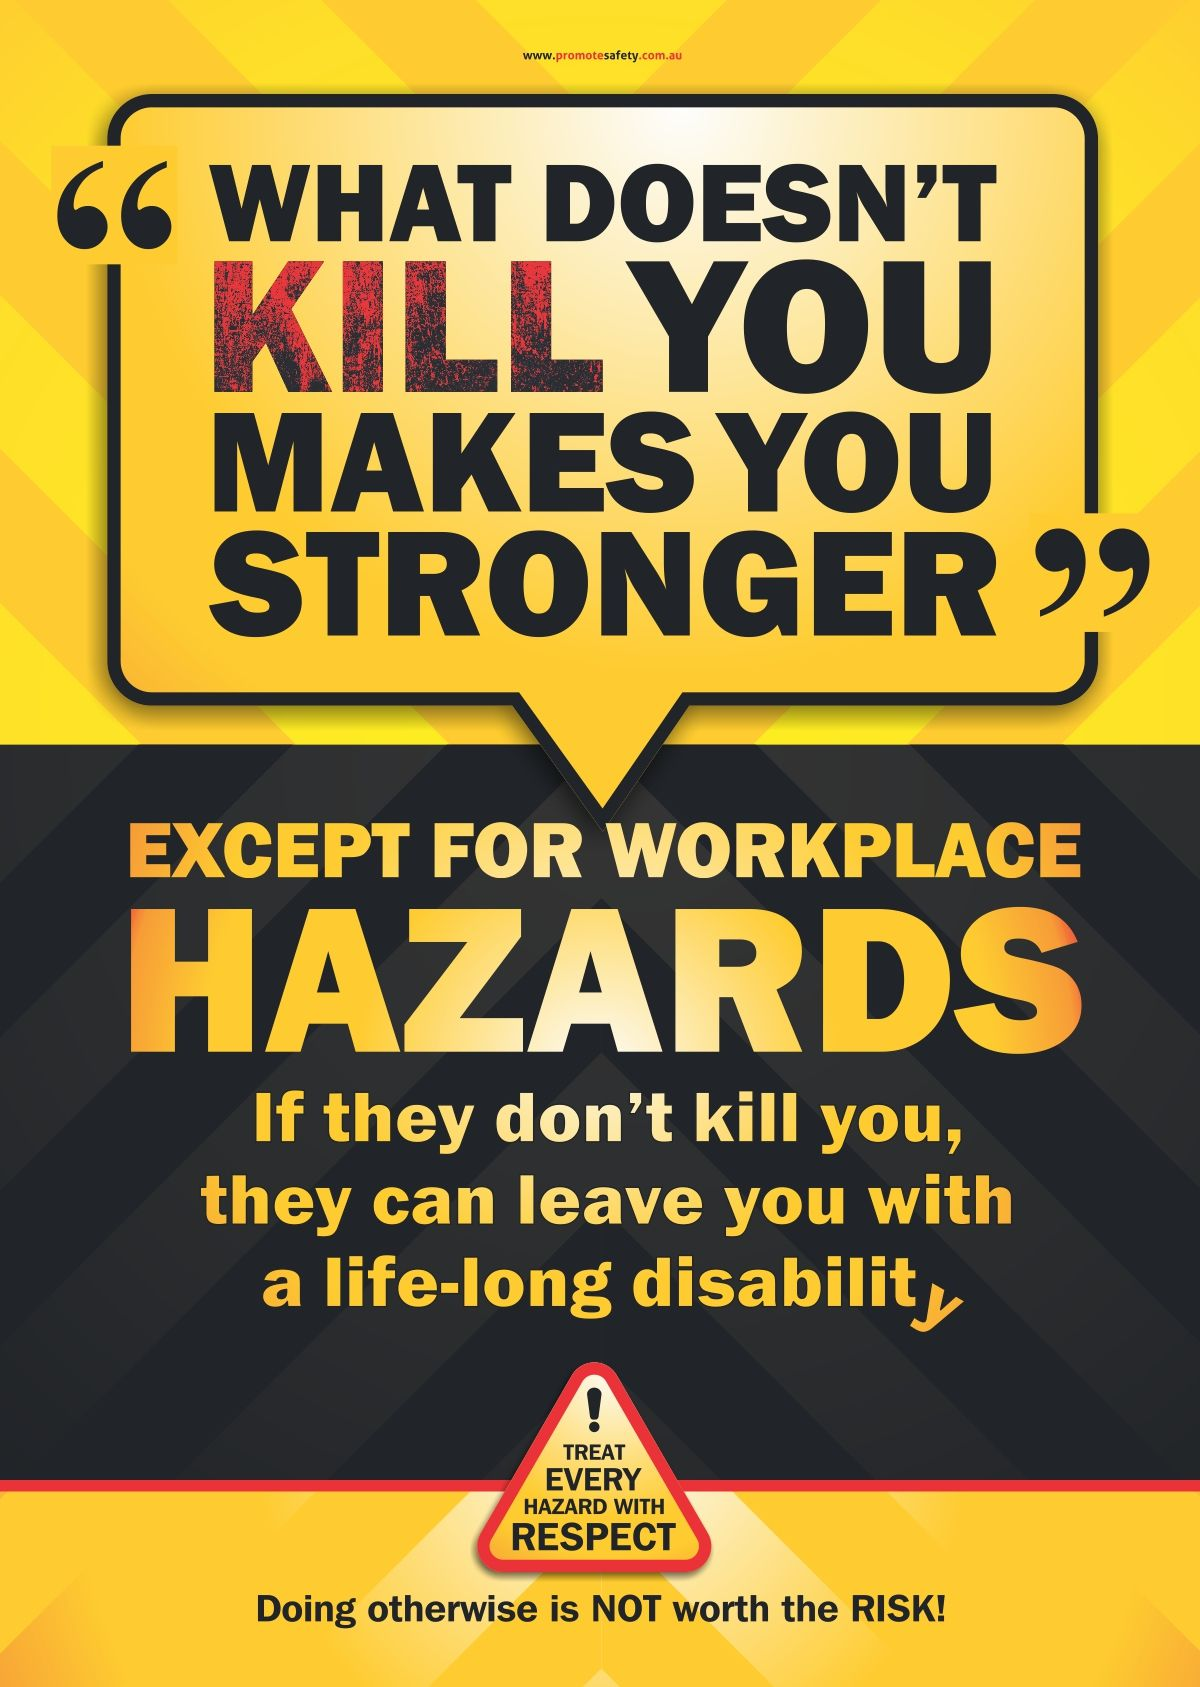 This Workplace Safety Poster uses a common saying to grab